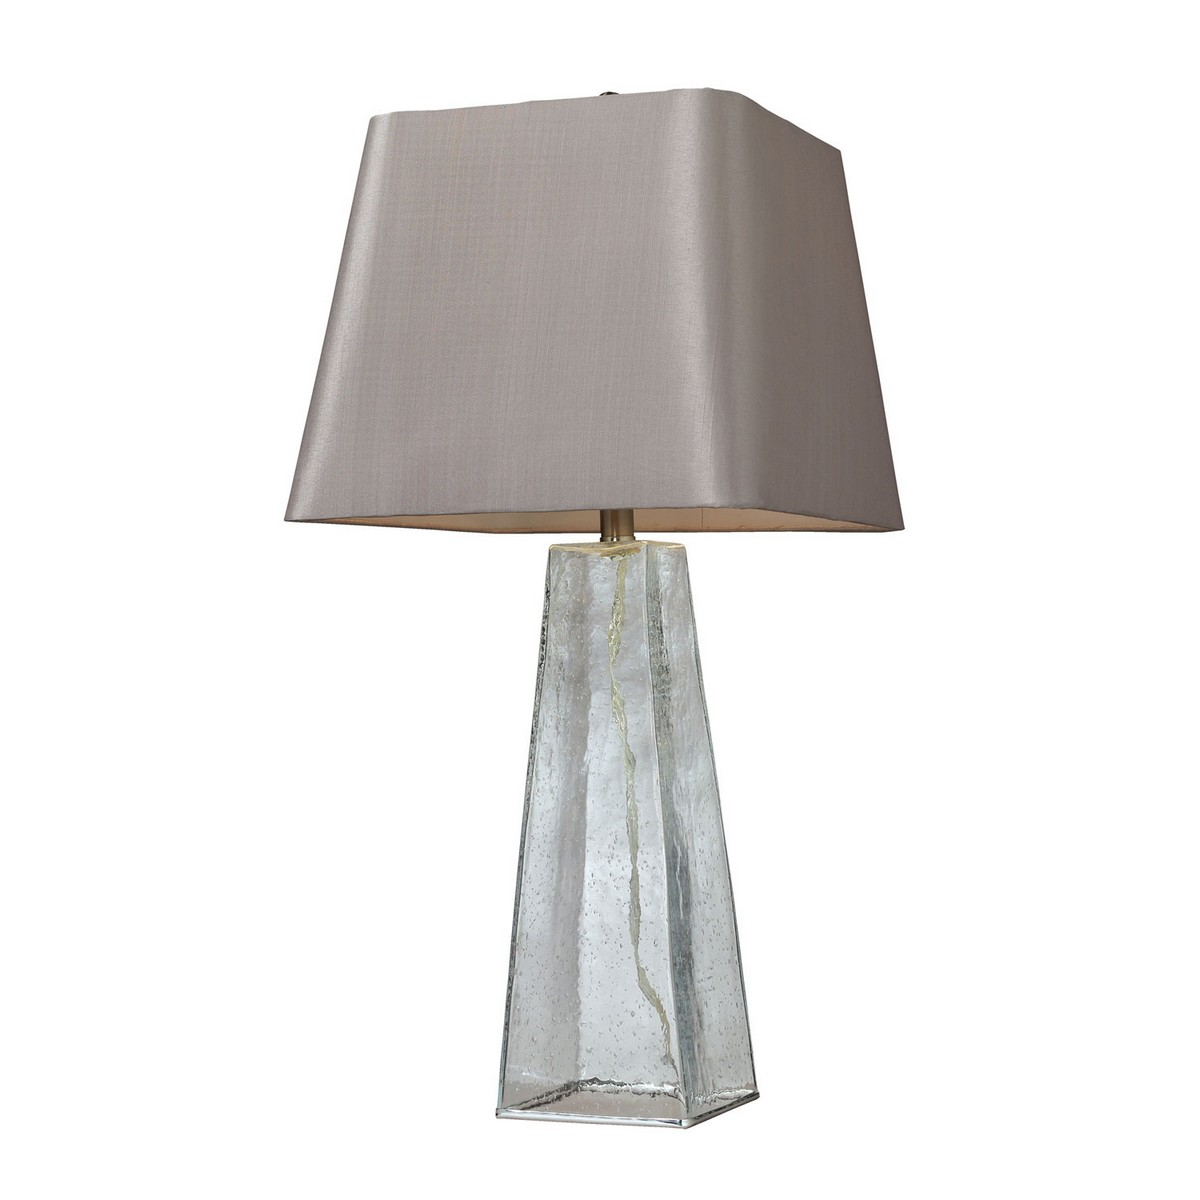 Elk Lighting D146 Table Lamp - Clear